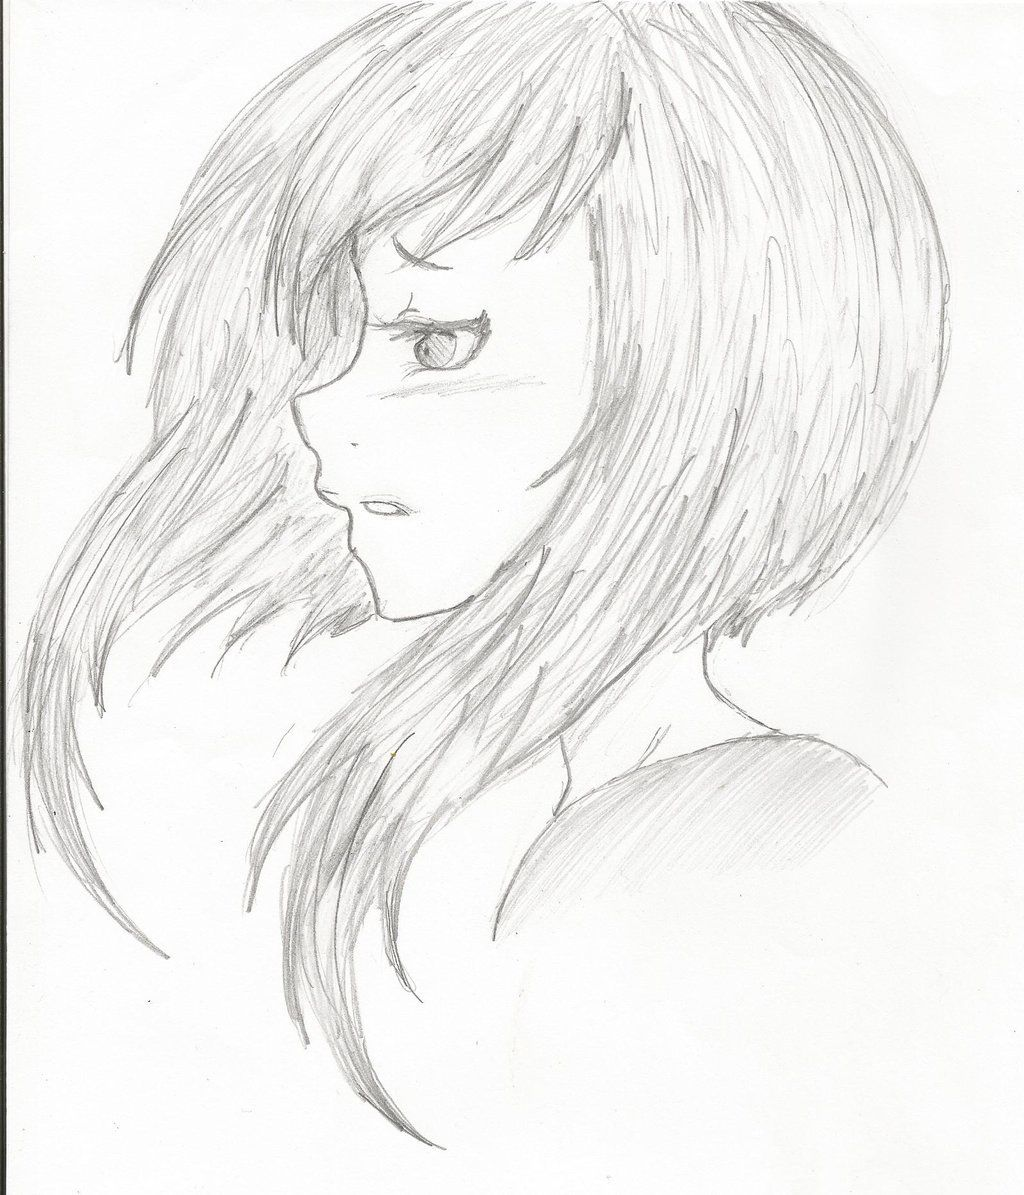 manga girl hair side view eyes